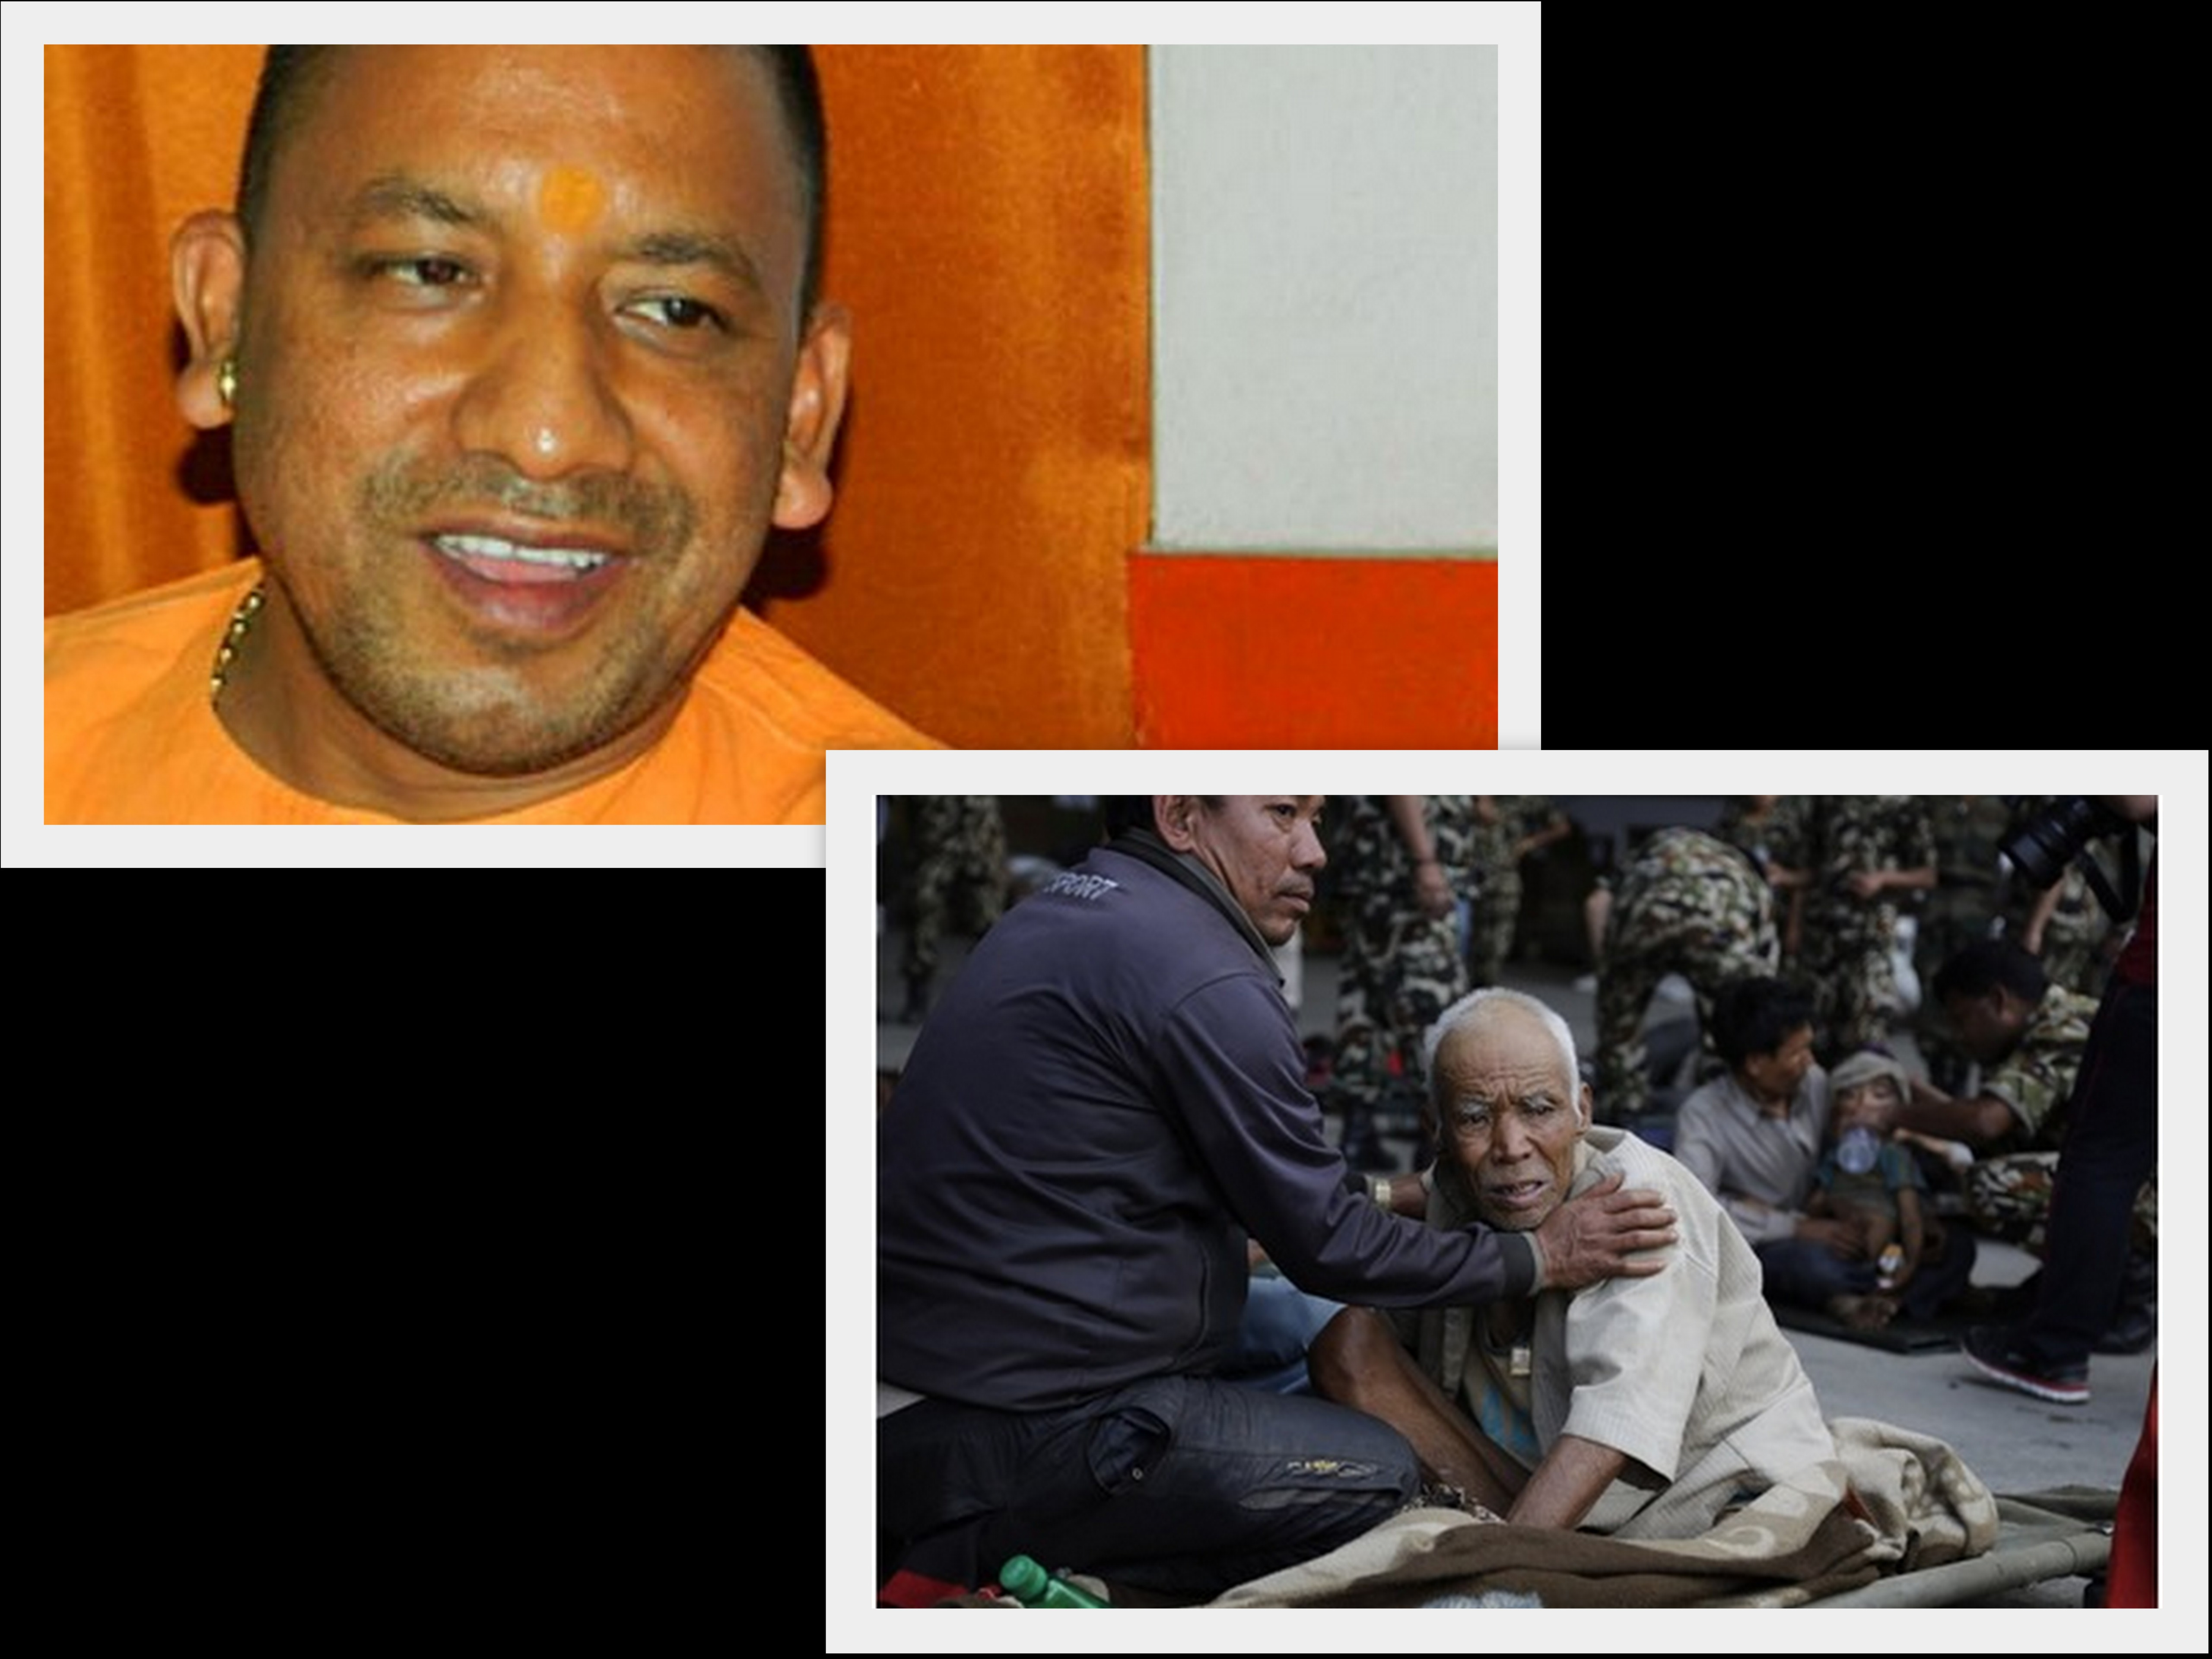 Lives can be saved later, Yogi Adityanath wants to rebuild Nepal's damaged temples first